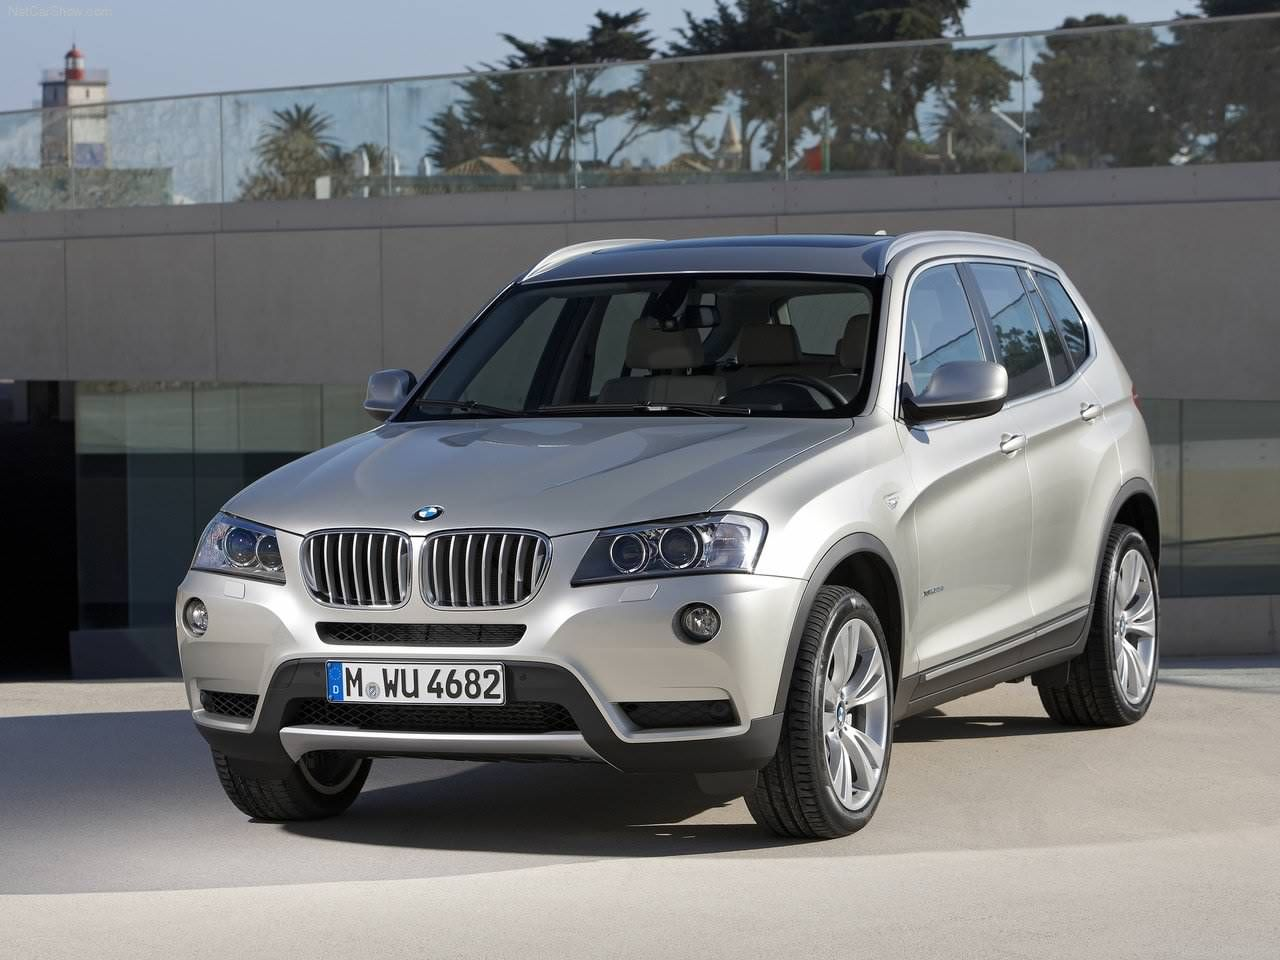 Bmw X Silver Pictures Car Pinterest Bmw X BMW And - Bmw x1 invoice price